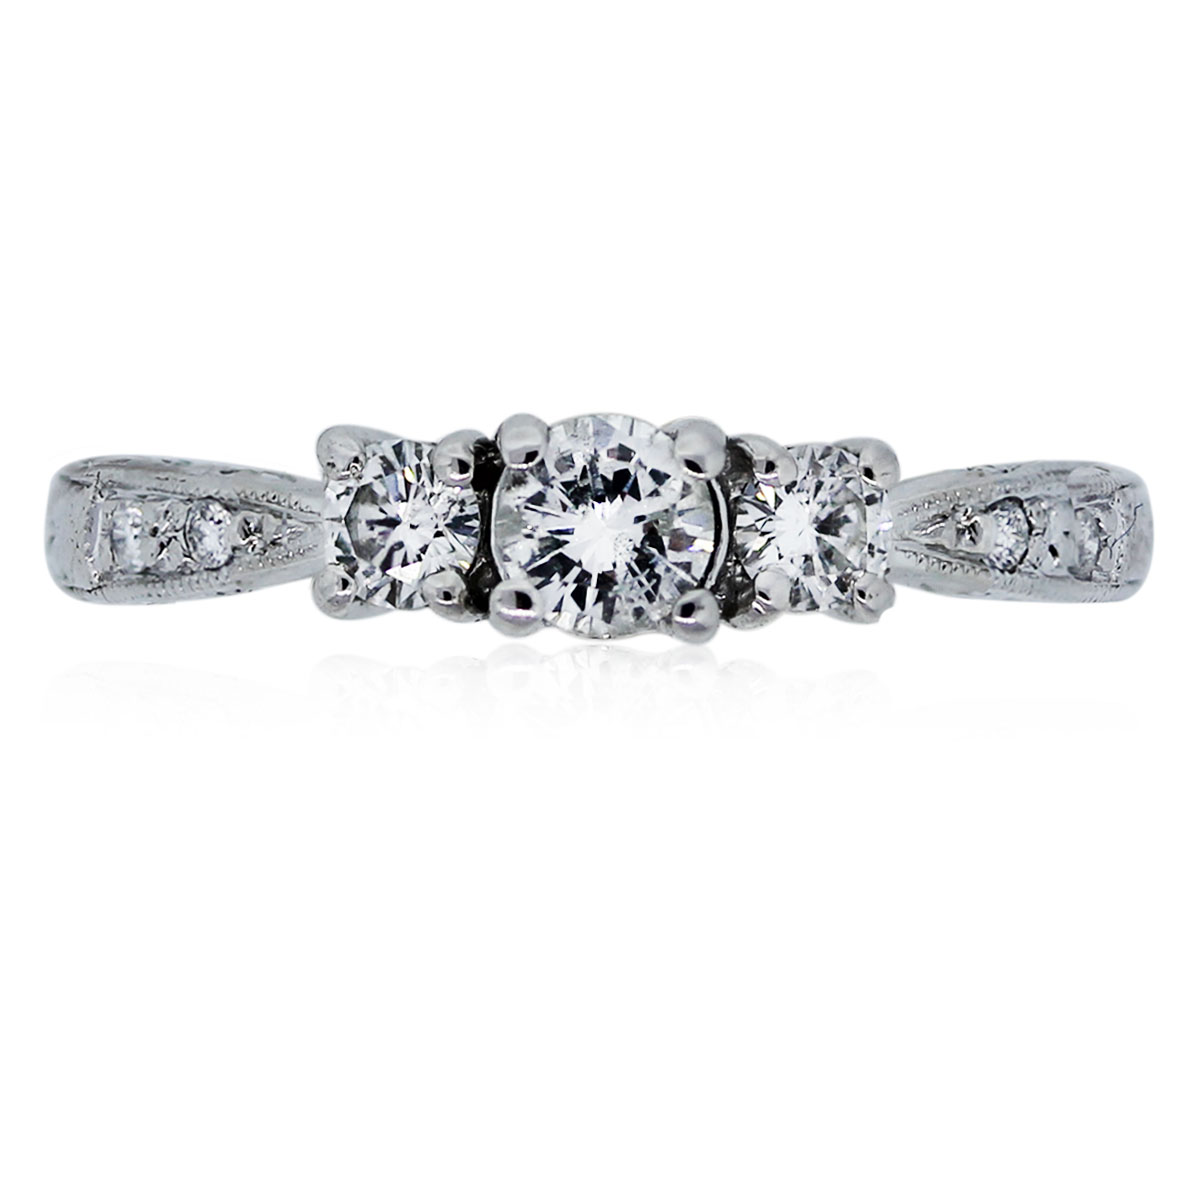 You are viewing this White Gold Diamond Engagement Ring!